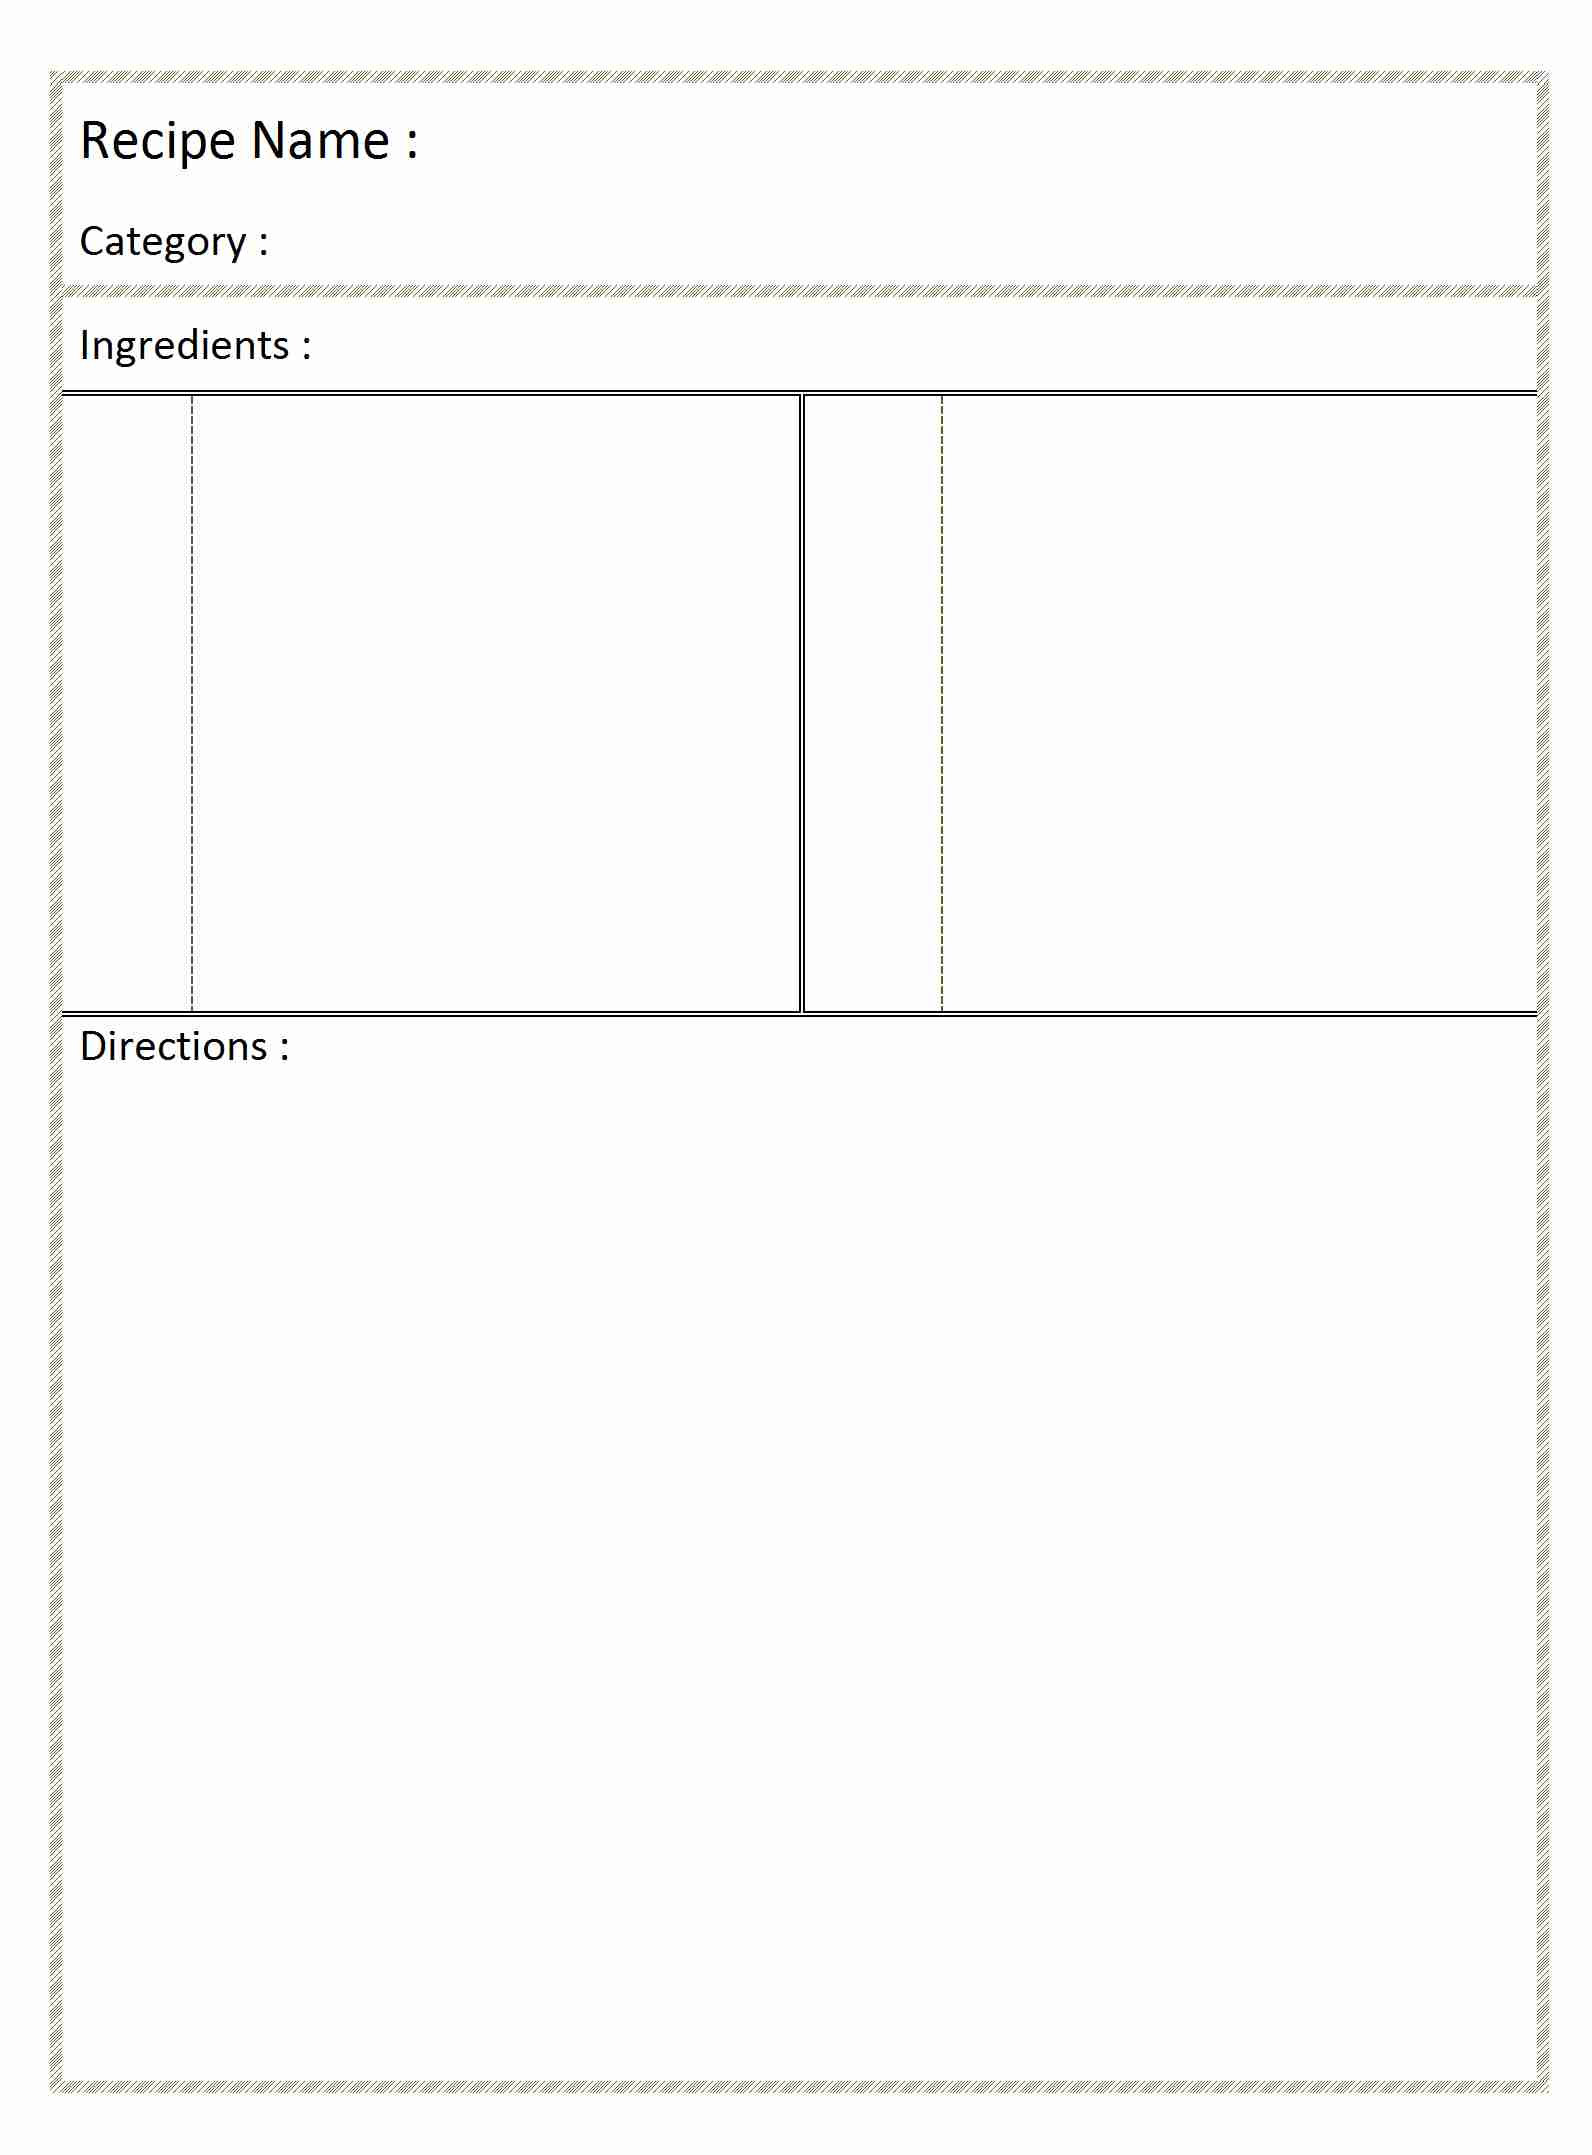 postcard template for pages - 7 best images of printable blank recipe templates free